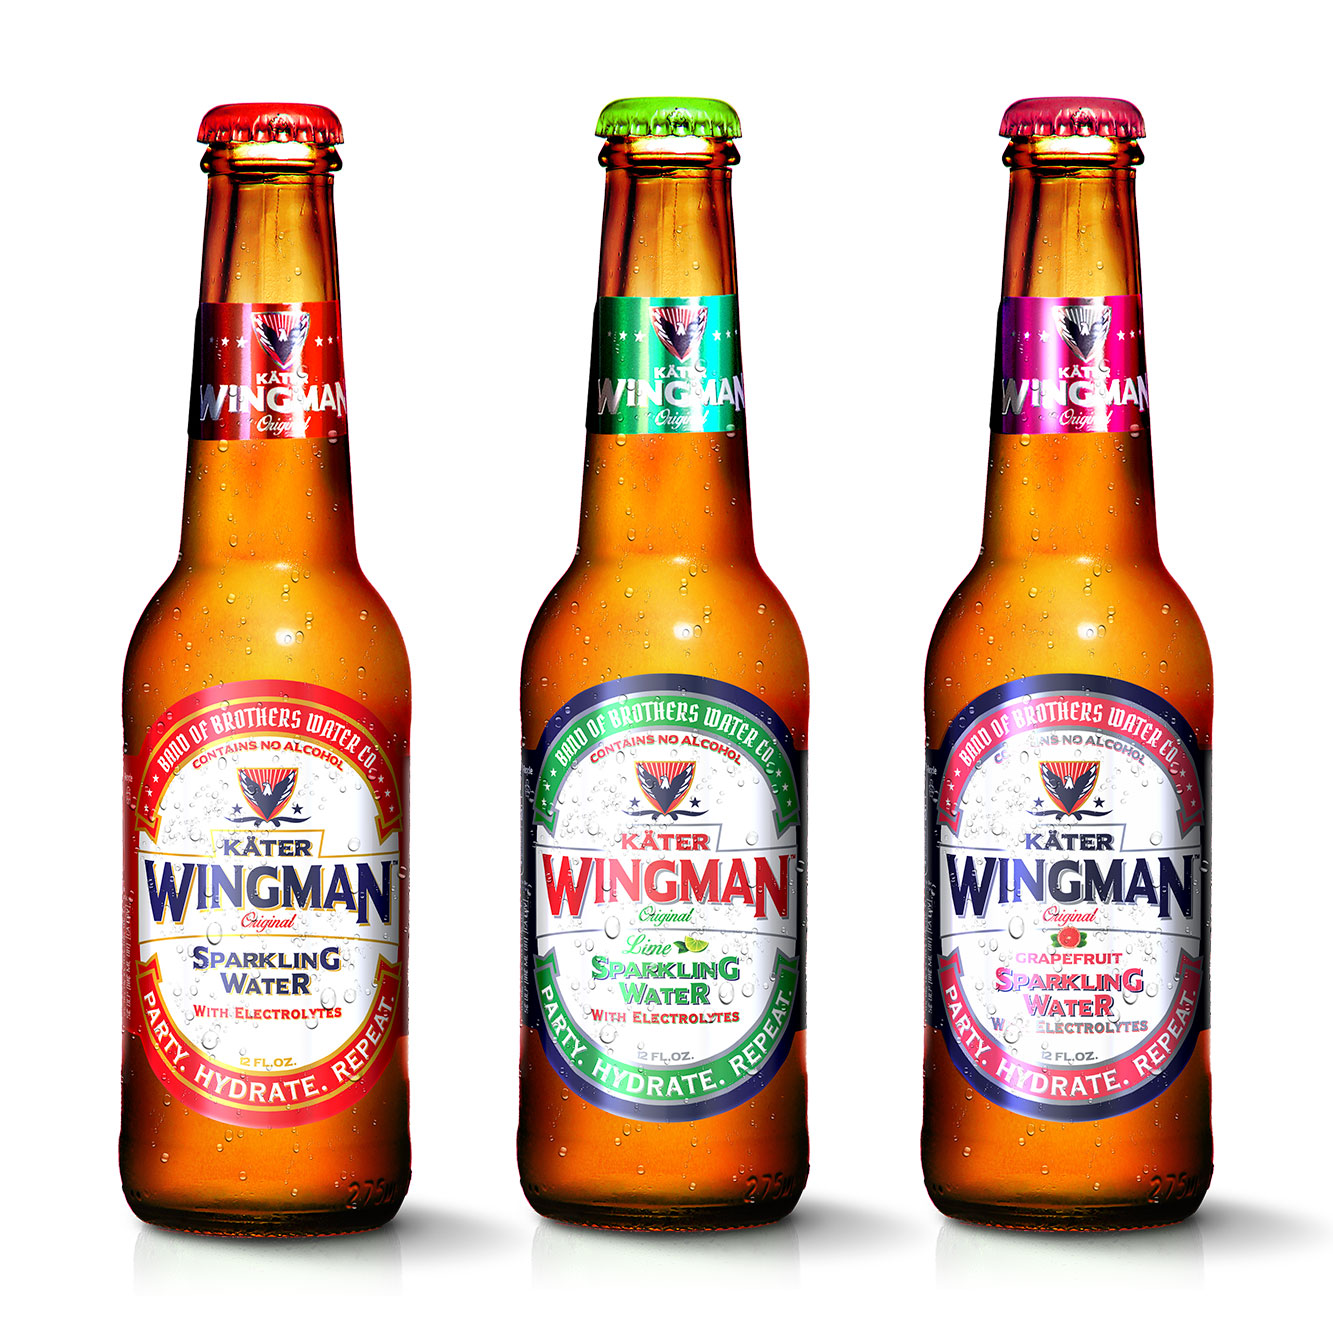 Wingman sparkling water with electrolytes